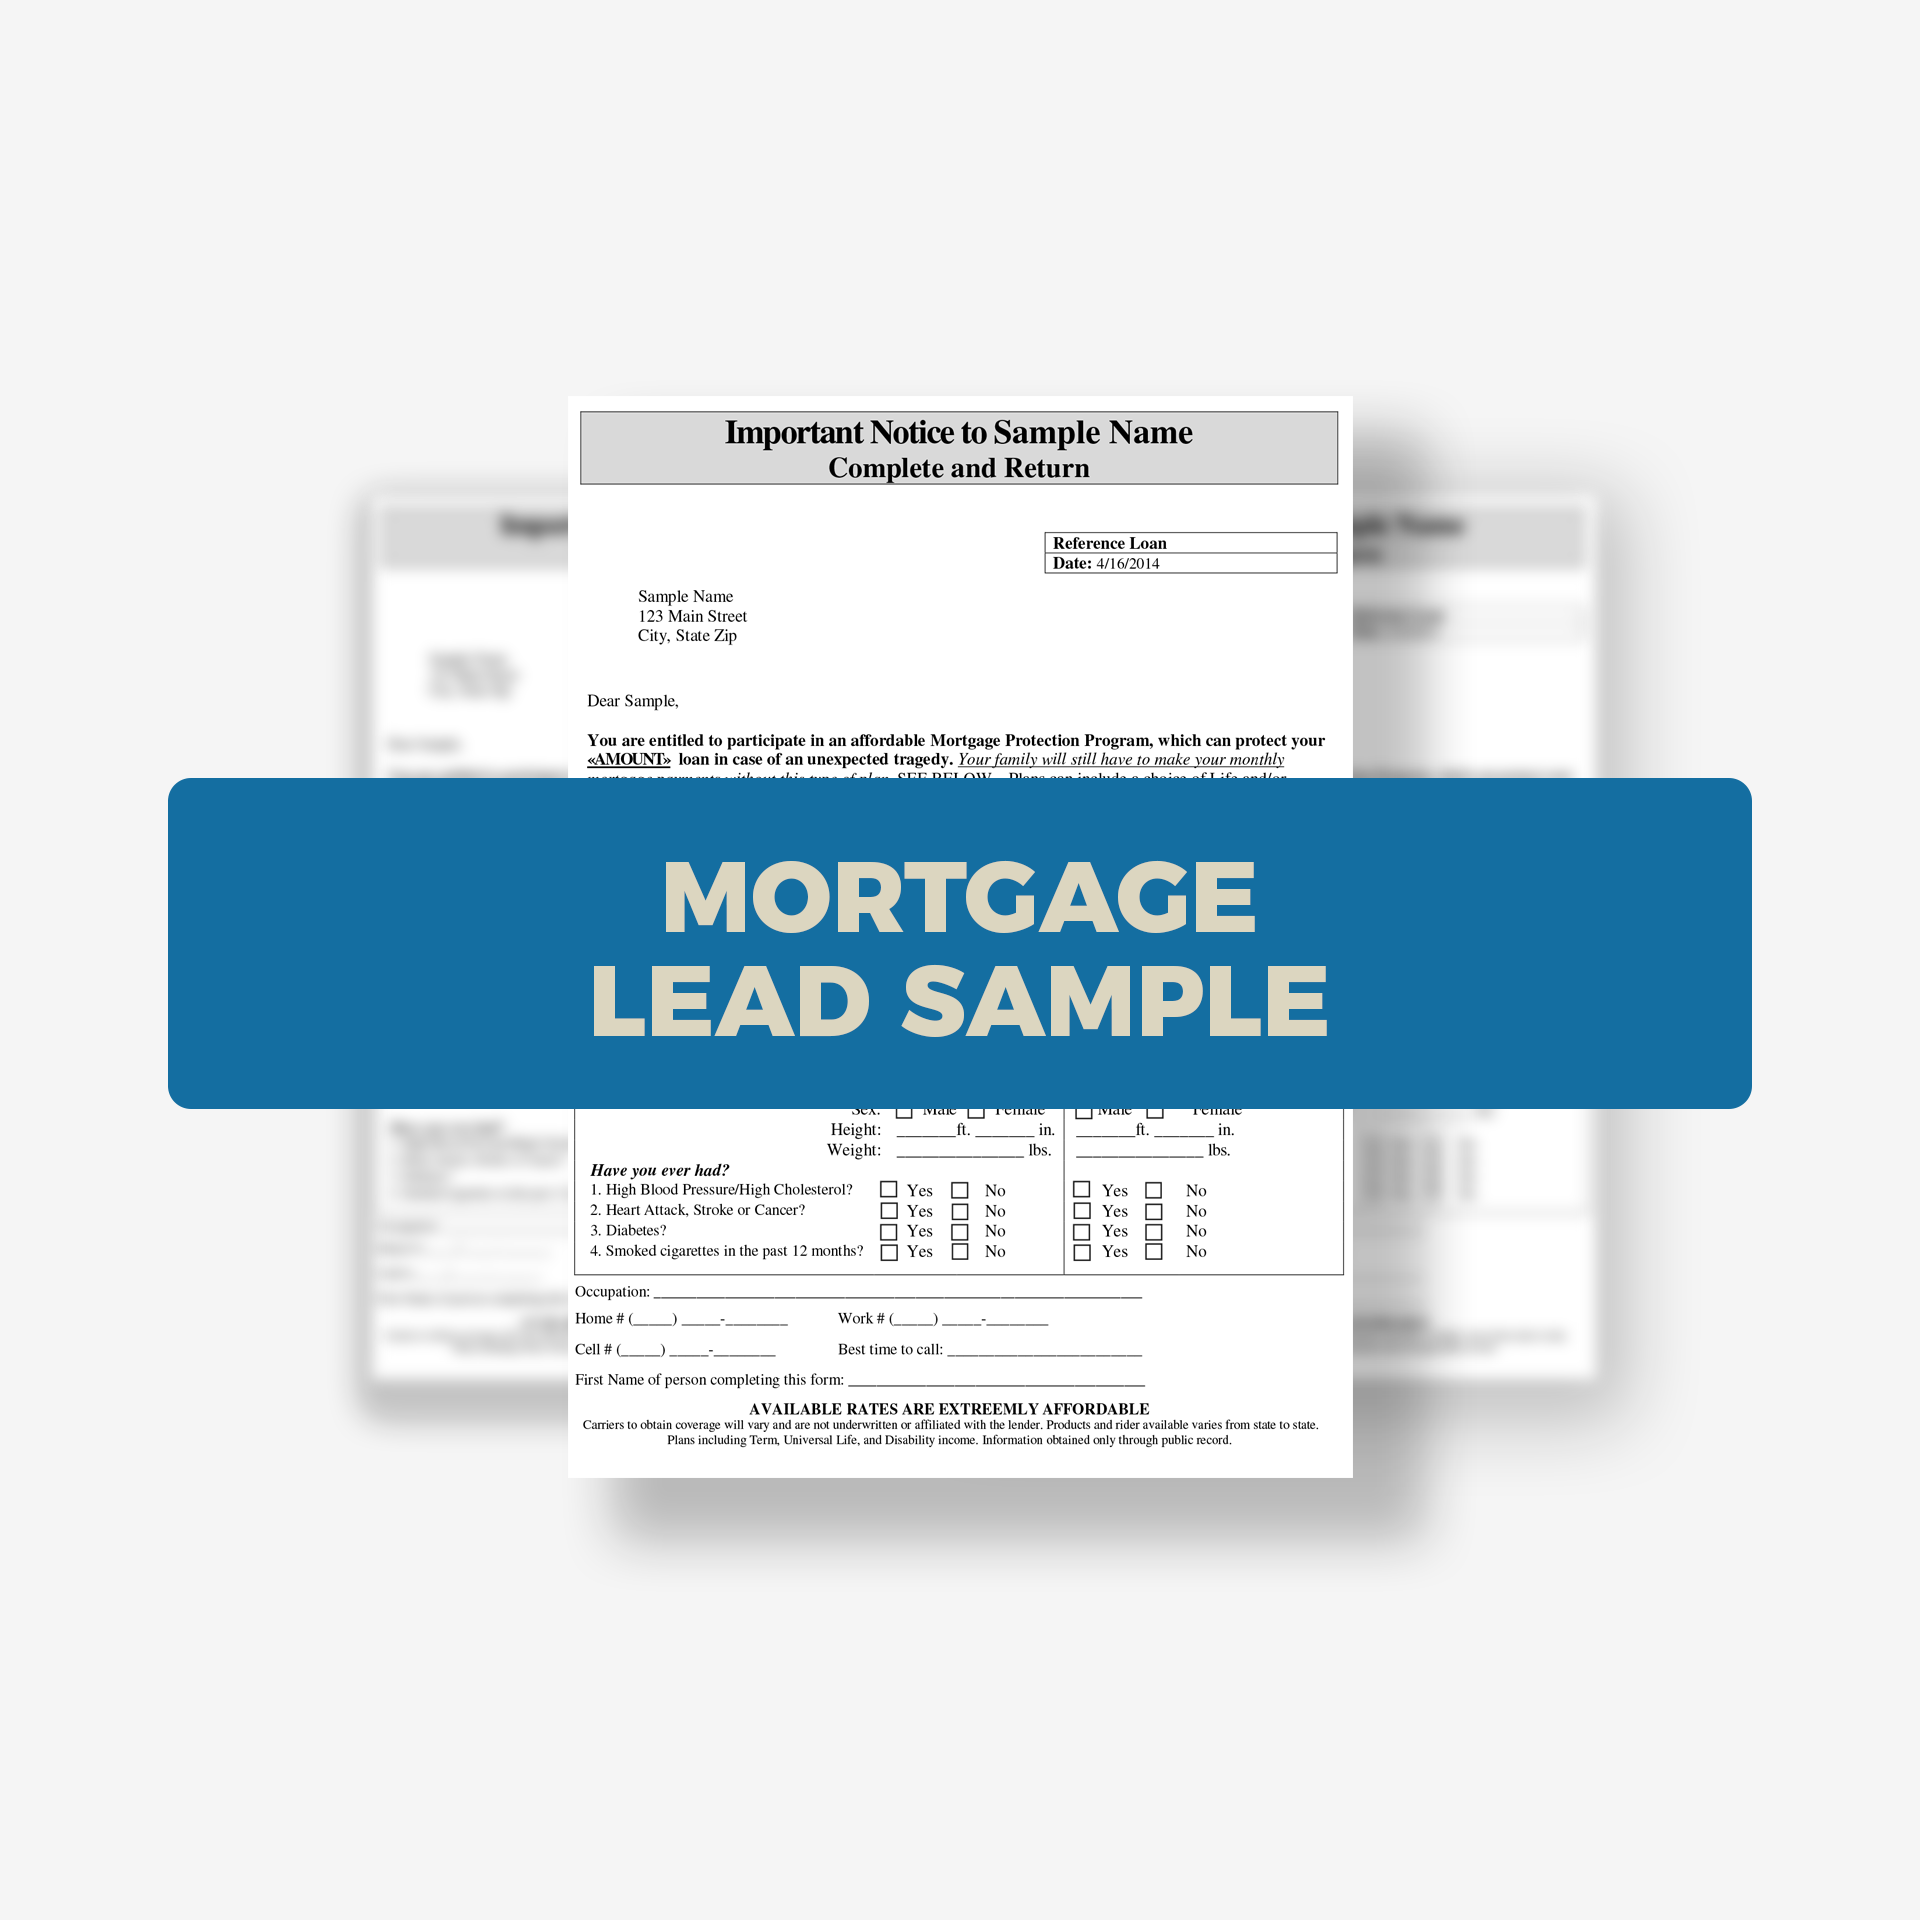 Mortgage Lead Sample.png